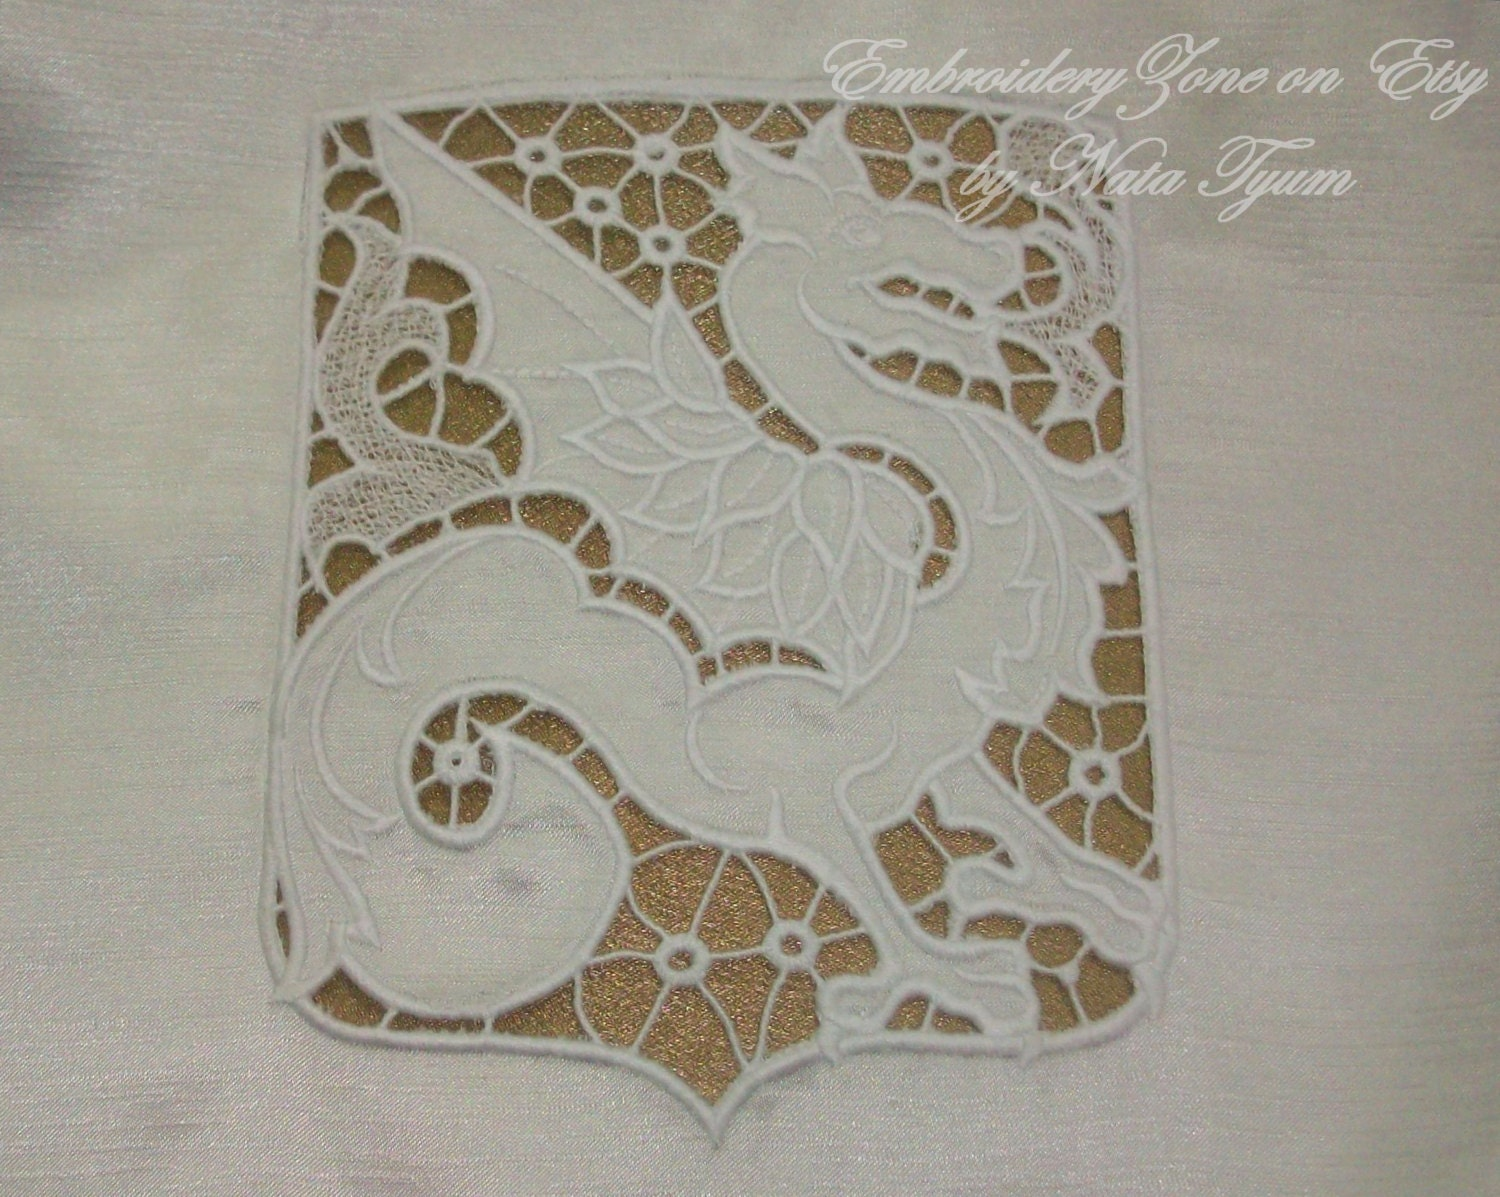 Dragon geraldic richelieu cutwork embroidery design machine